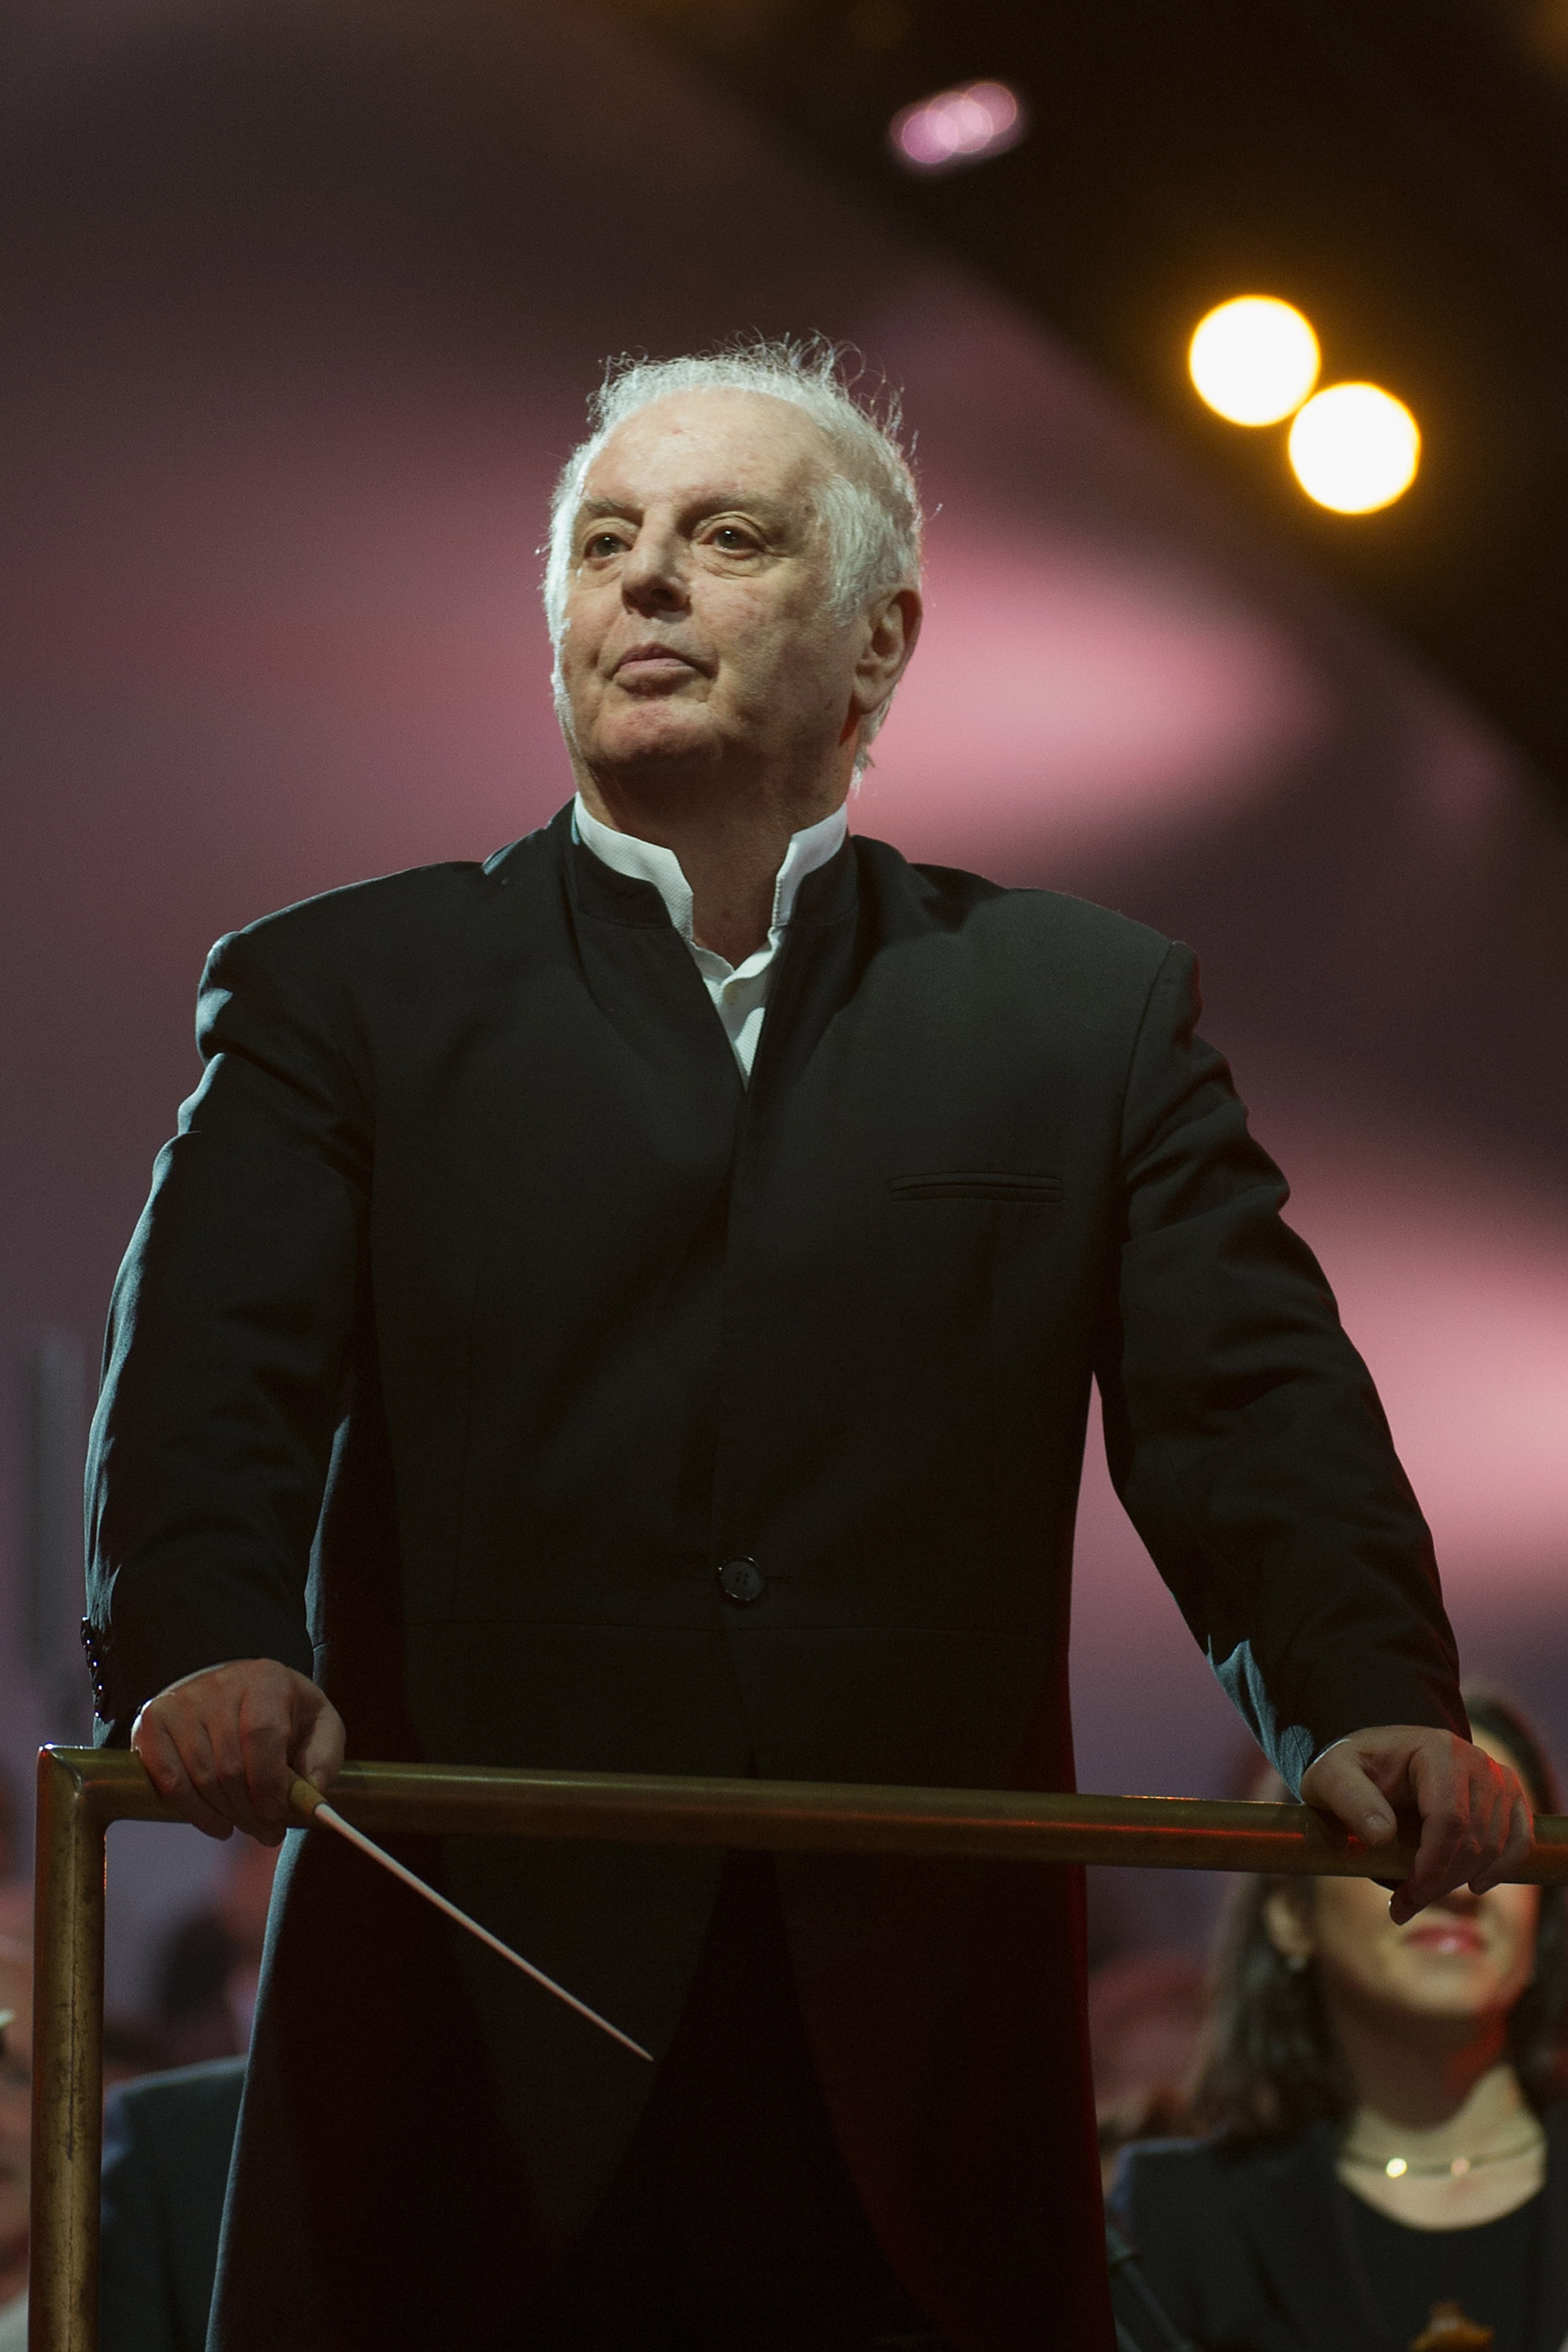 Conductor Daniel Barenboim performs at Brandenburg Gate during celebrations on the 25th anniversary of the fall of Wall in Berlin, on November 9, 2014.